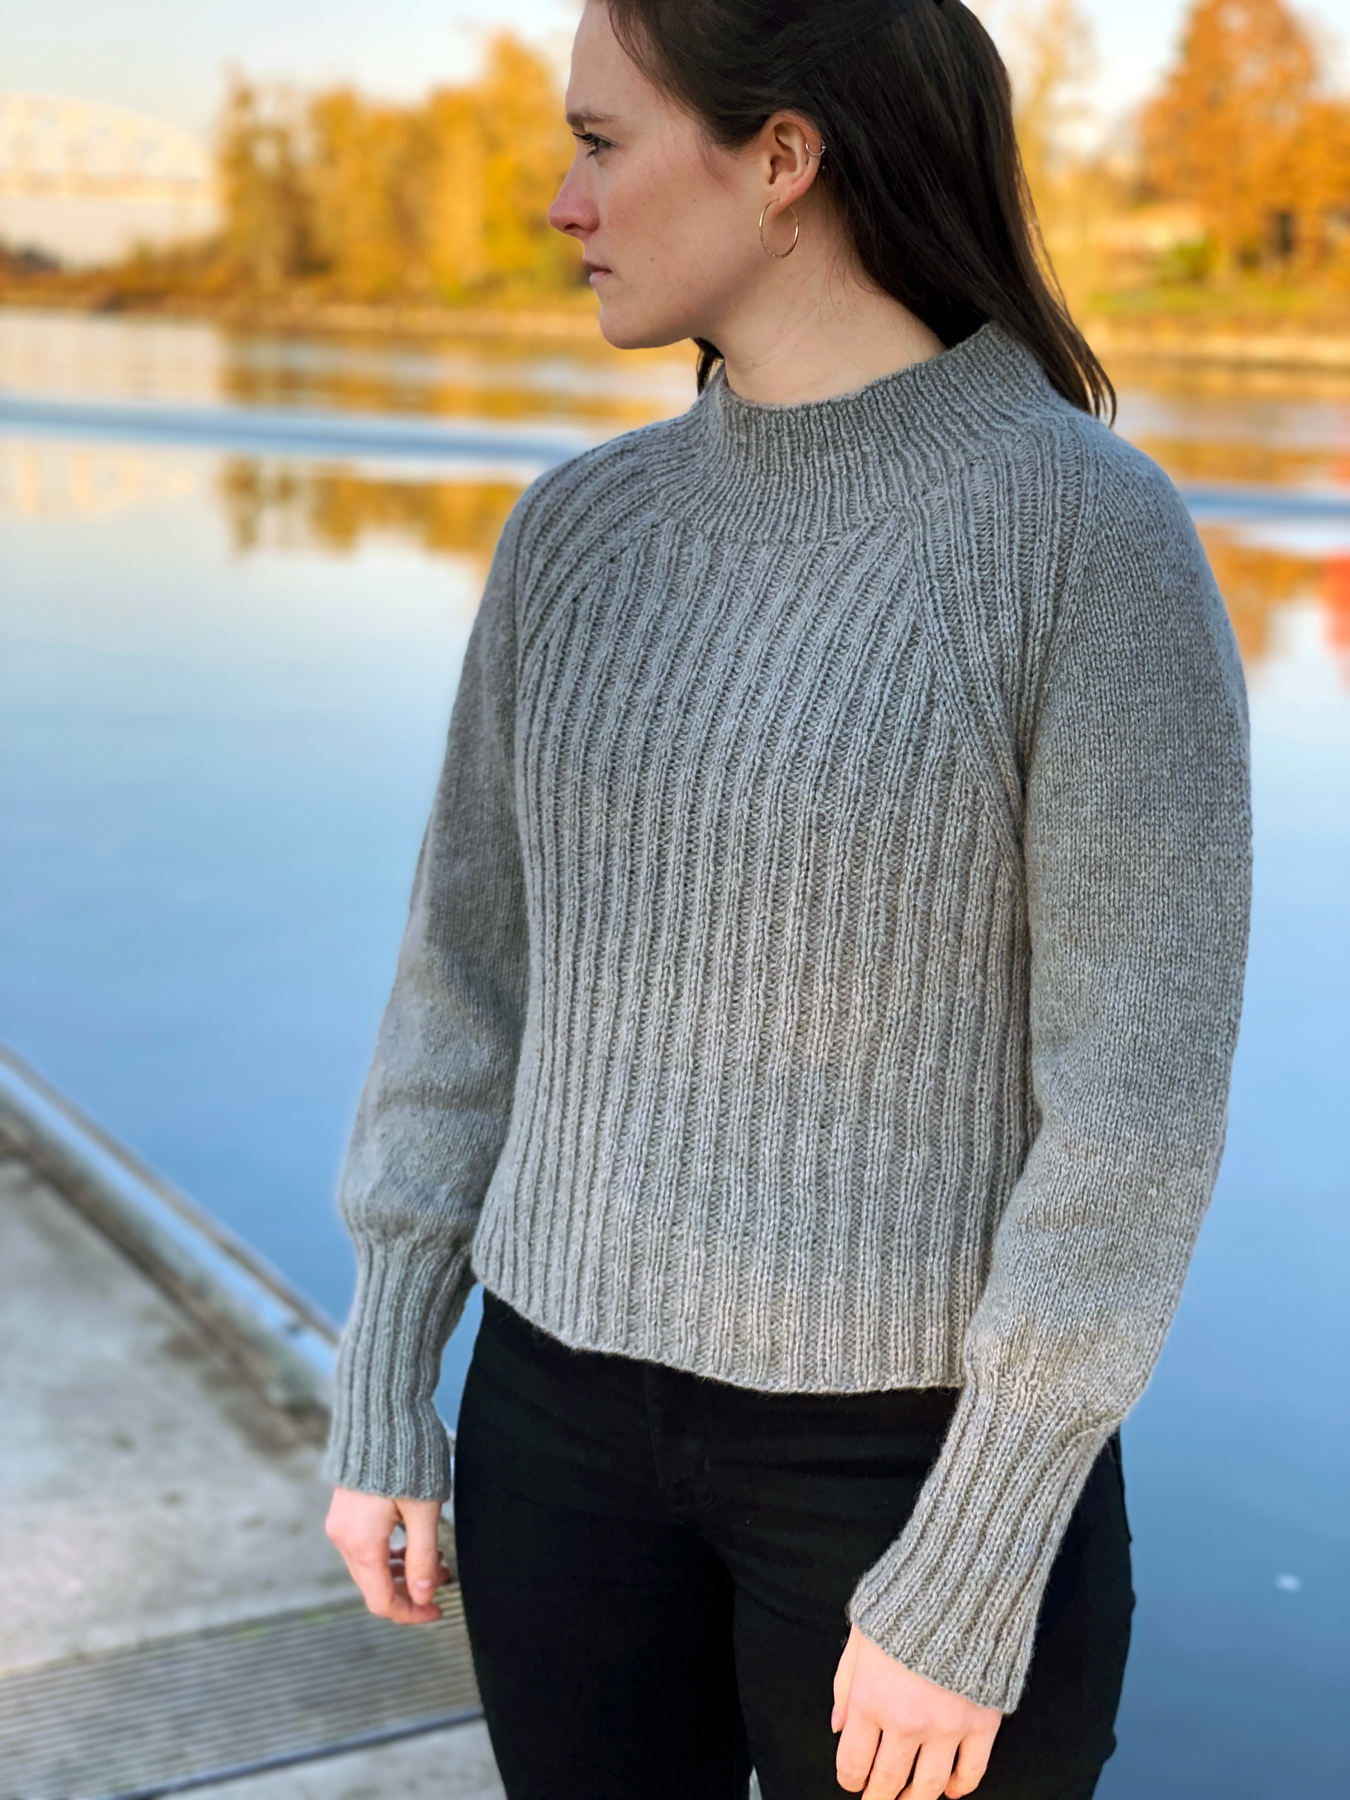 A woman wearing a wide rib sweater is standing on the edge of a still lake.   Santiam Canyon pullover knitted using The Fibre Co. Lore